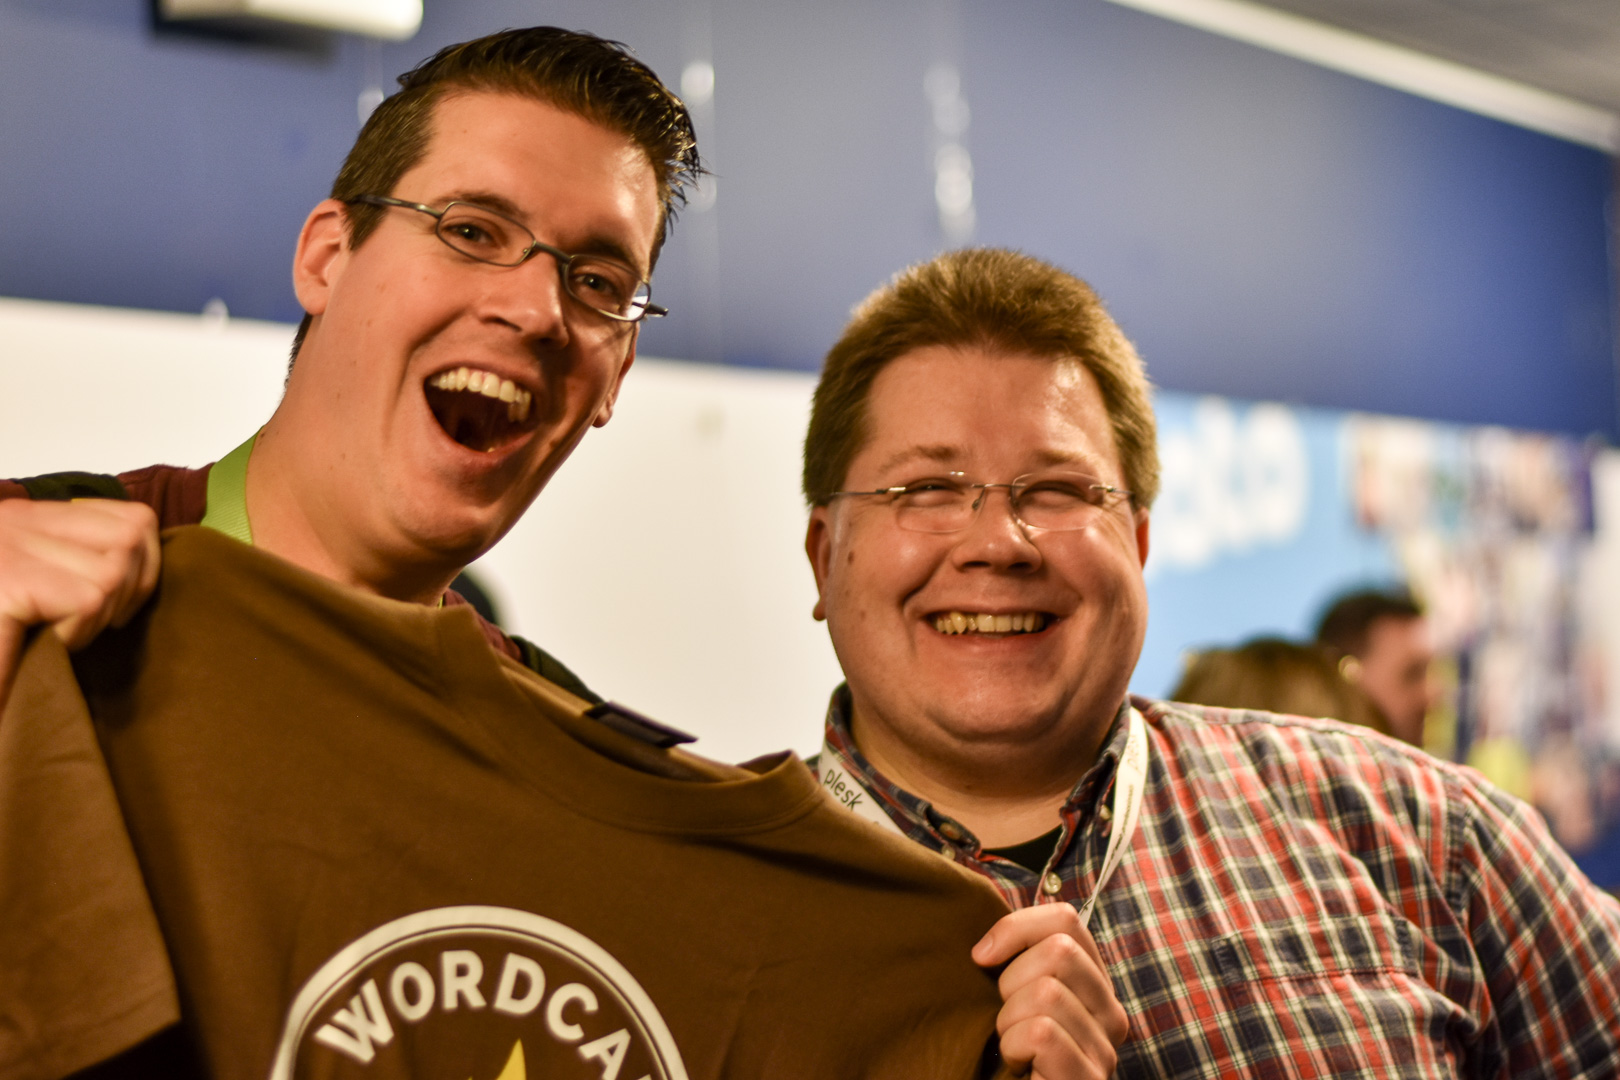 WordCamp Utrecht, Taco Verdonshot and Thomas Brühl with WordCamp Cologne T-shirt